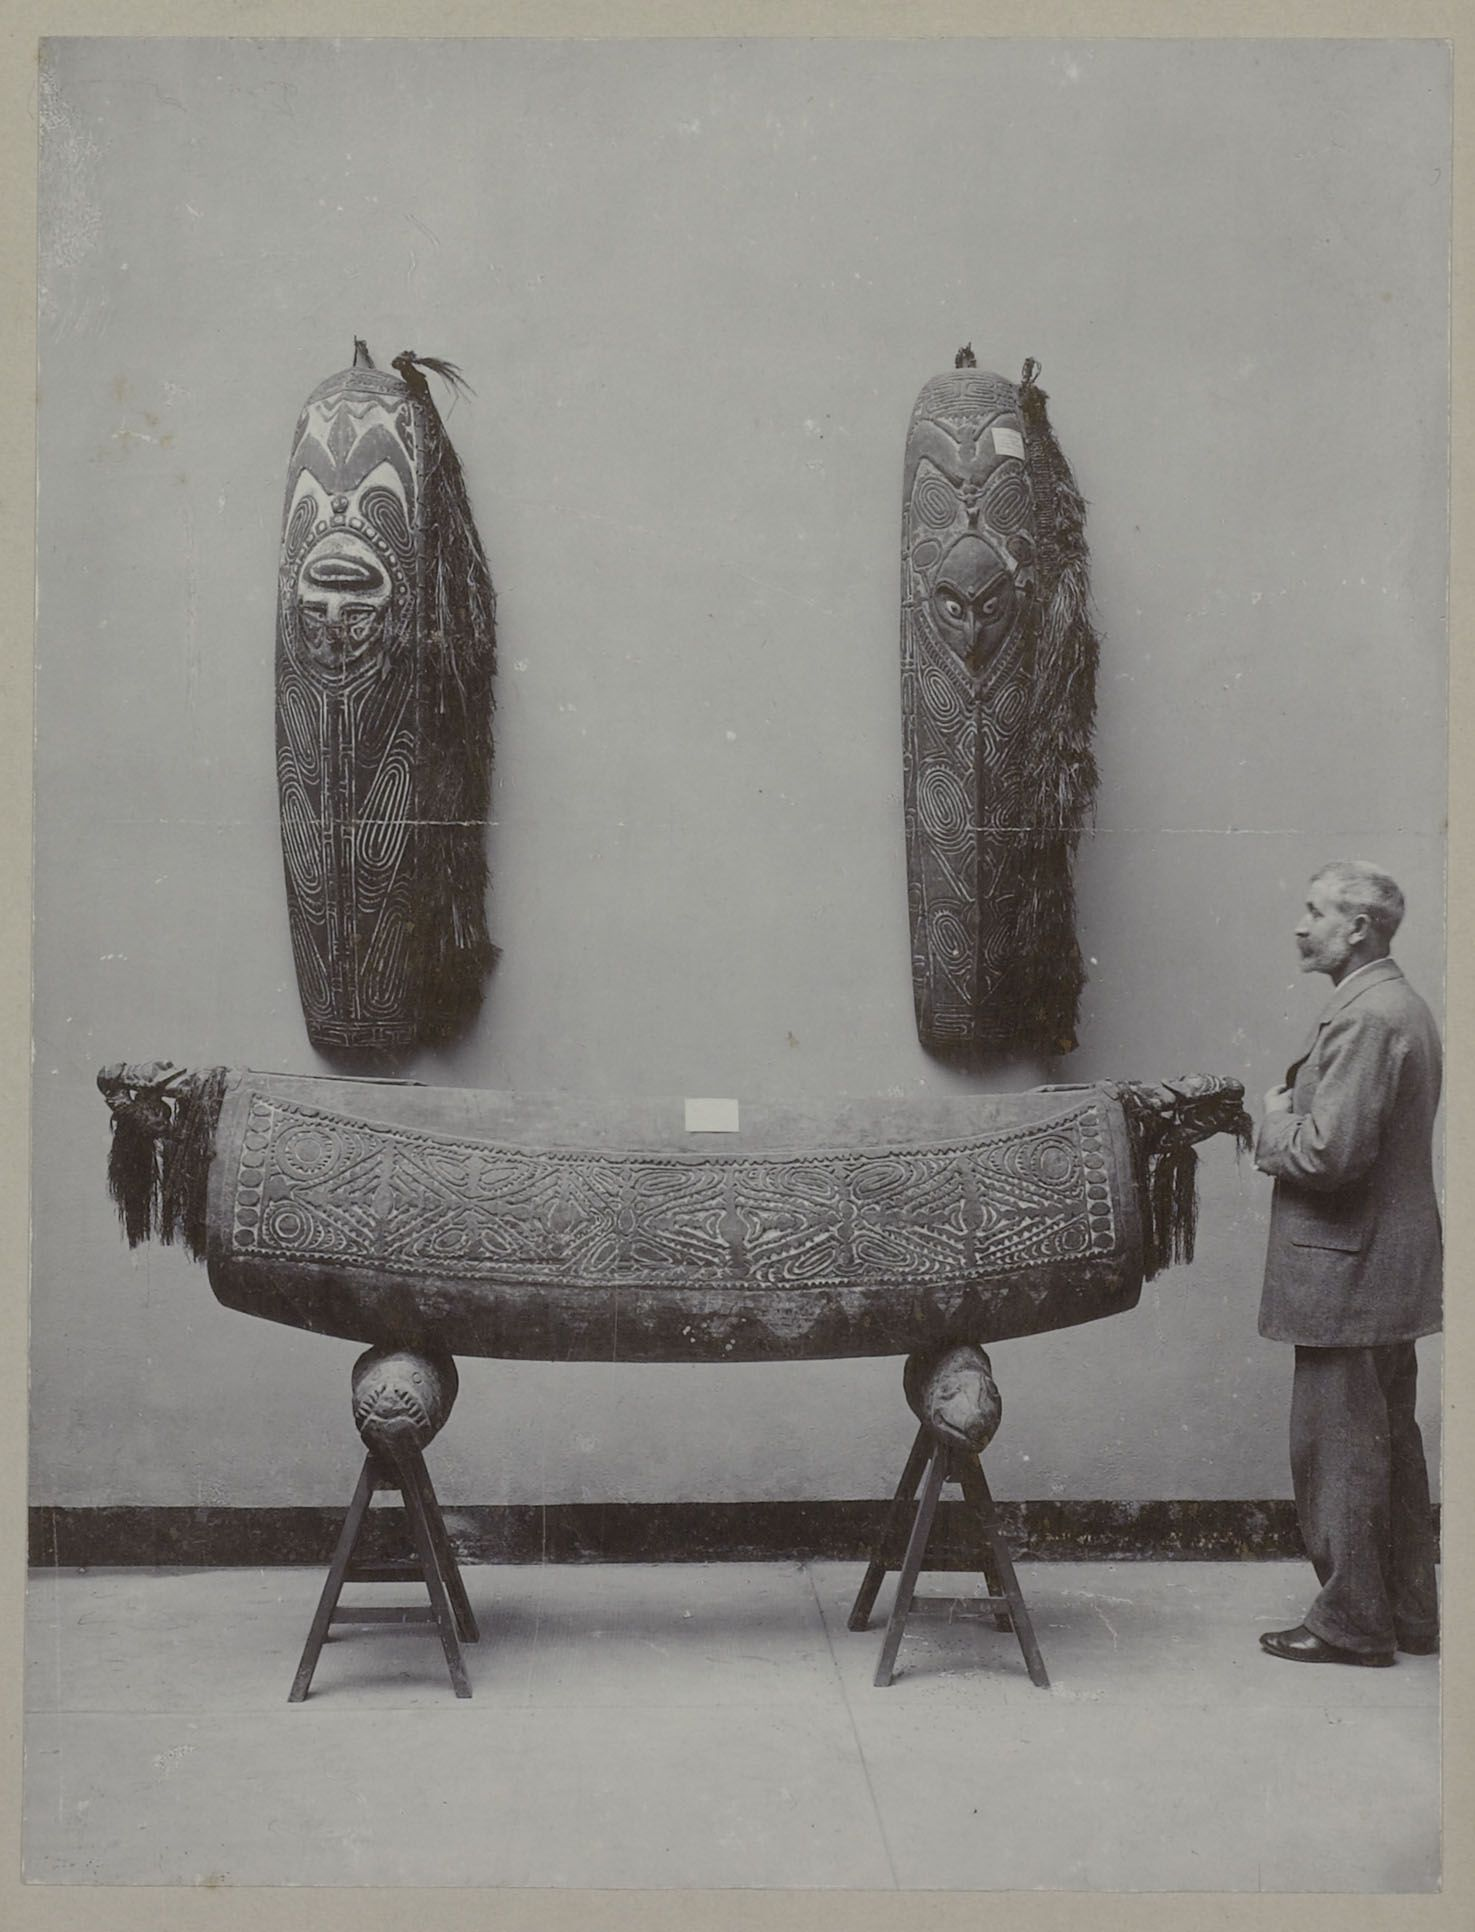 Sepik Region Artefacts Two Shields And A Garamut Before 1903 A Garamut Is A Hollow Log Which Is Thumped With A Sort Of Pestle Tribal Art Ocean Art New Art